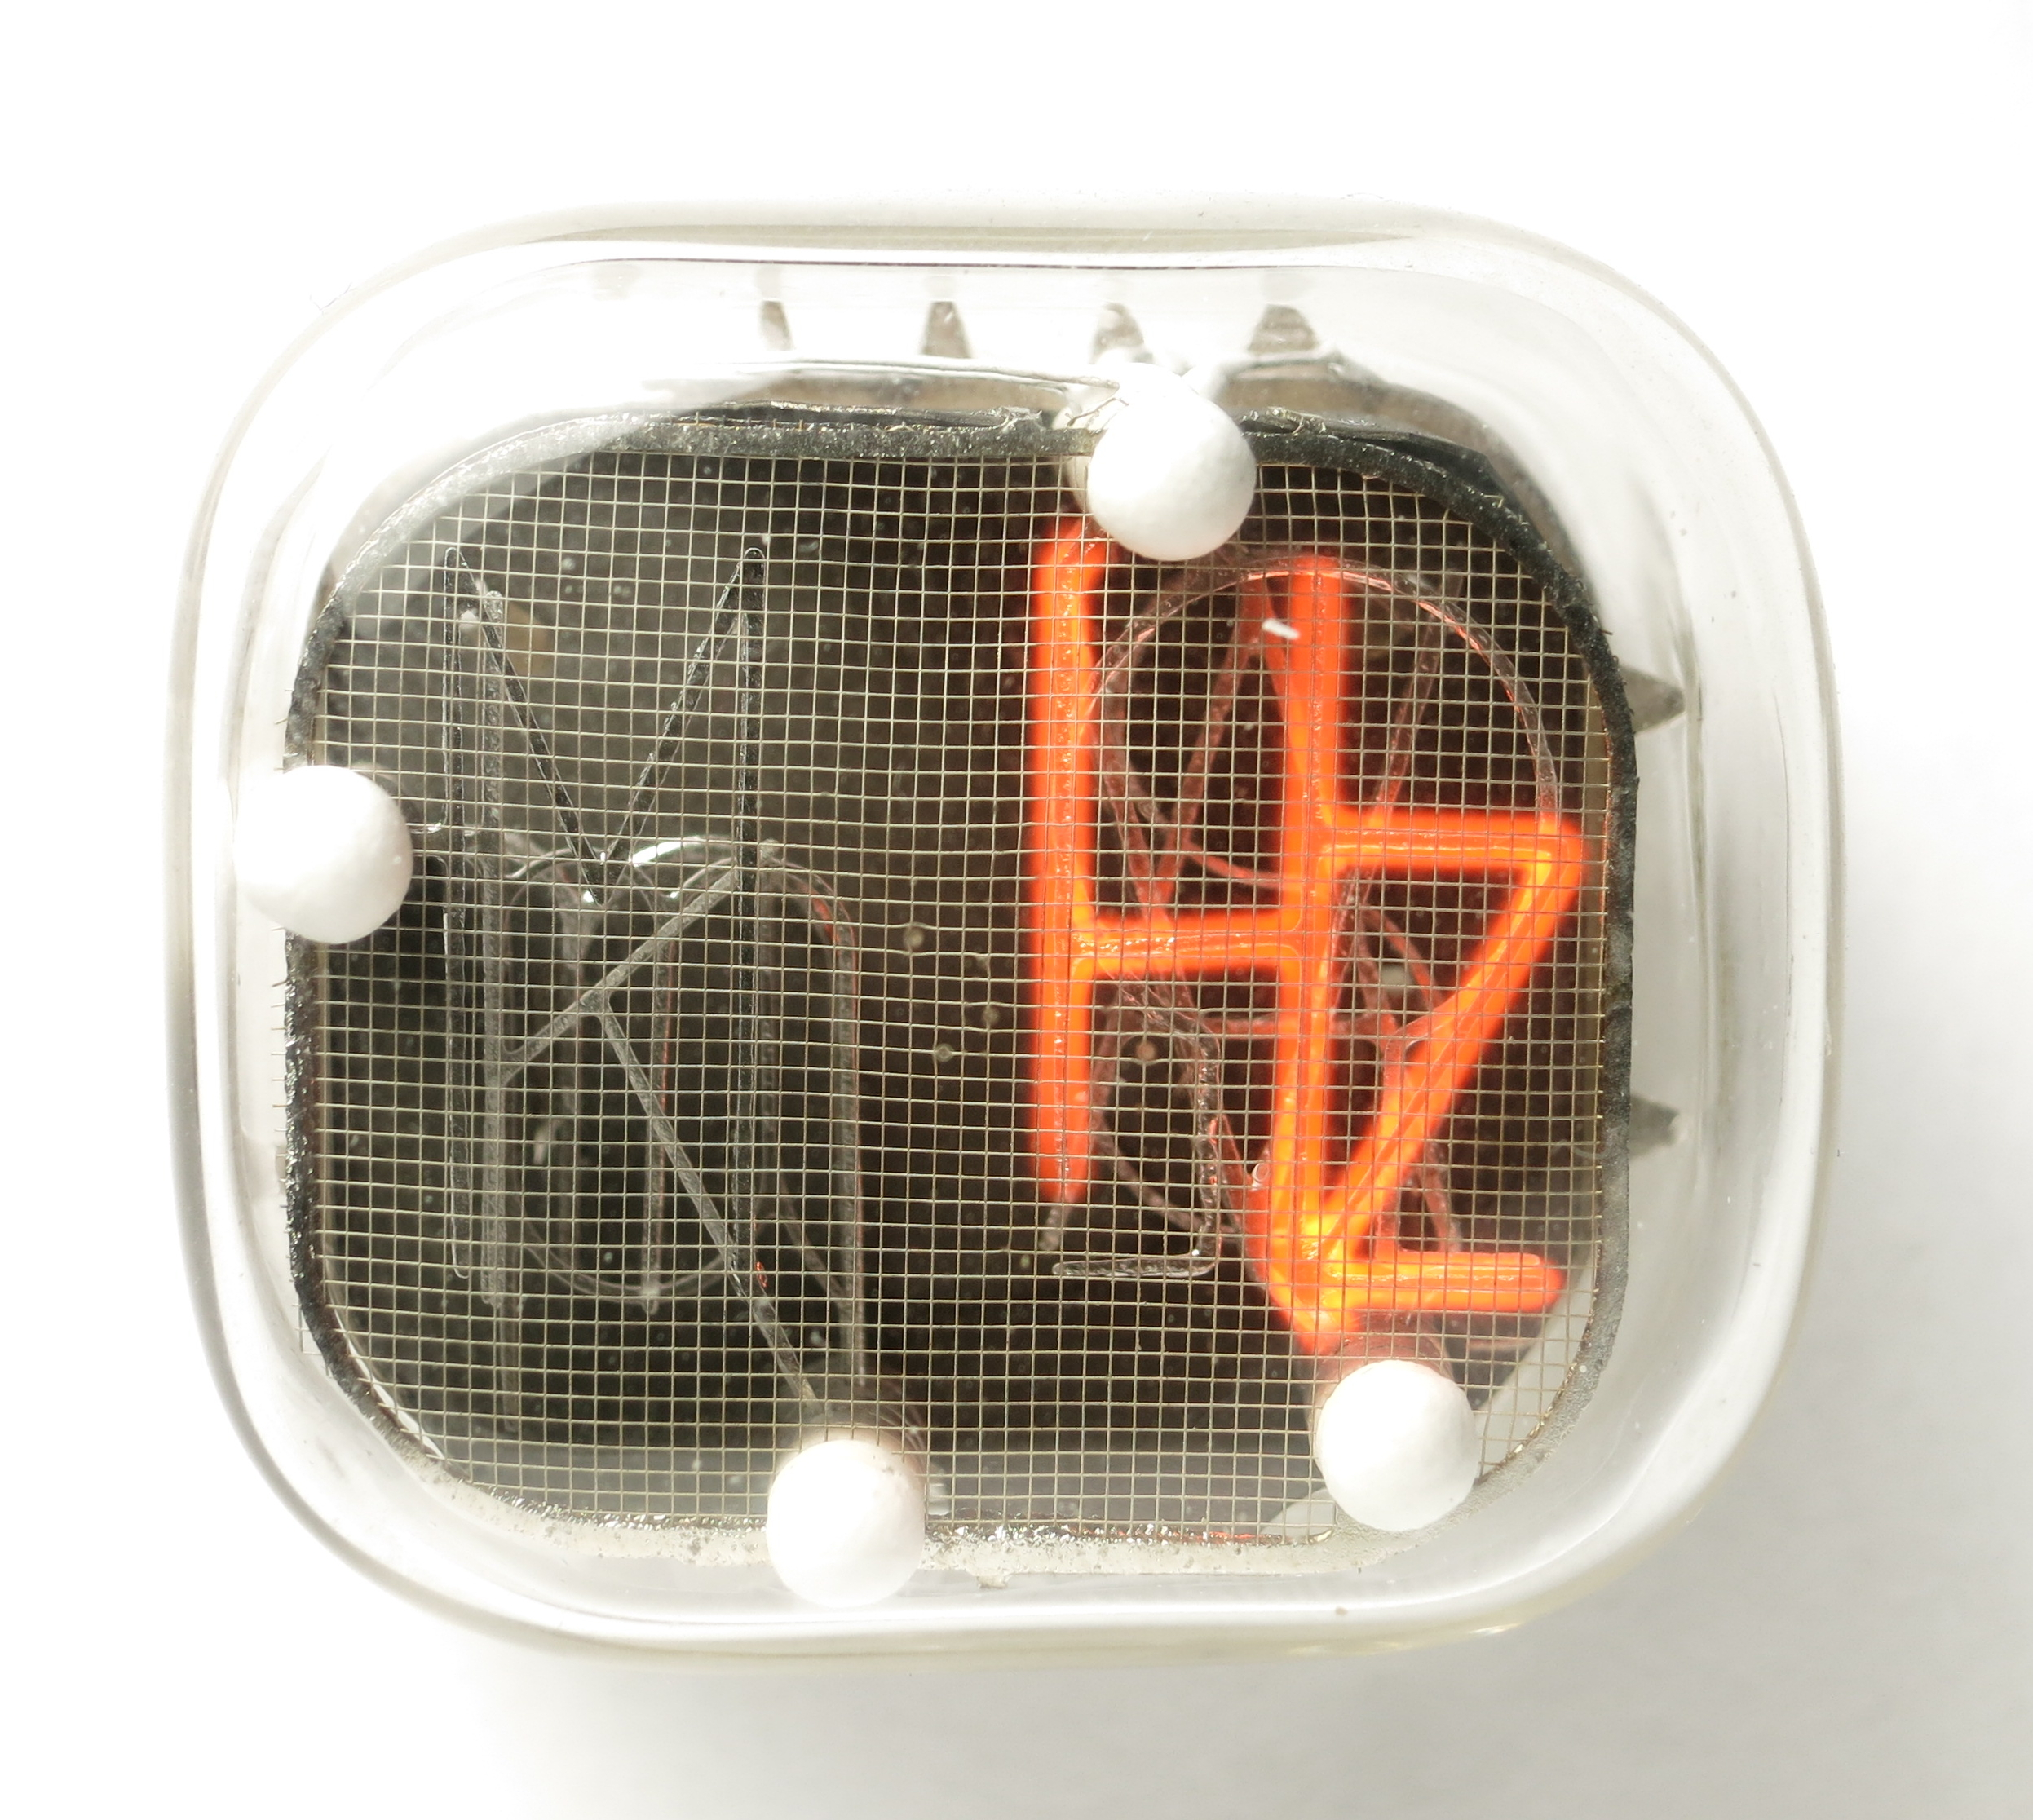 The symbol 'Hz' of the IN-XX